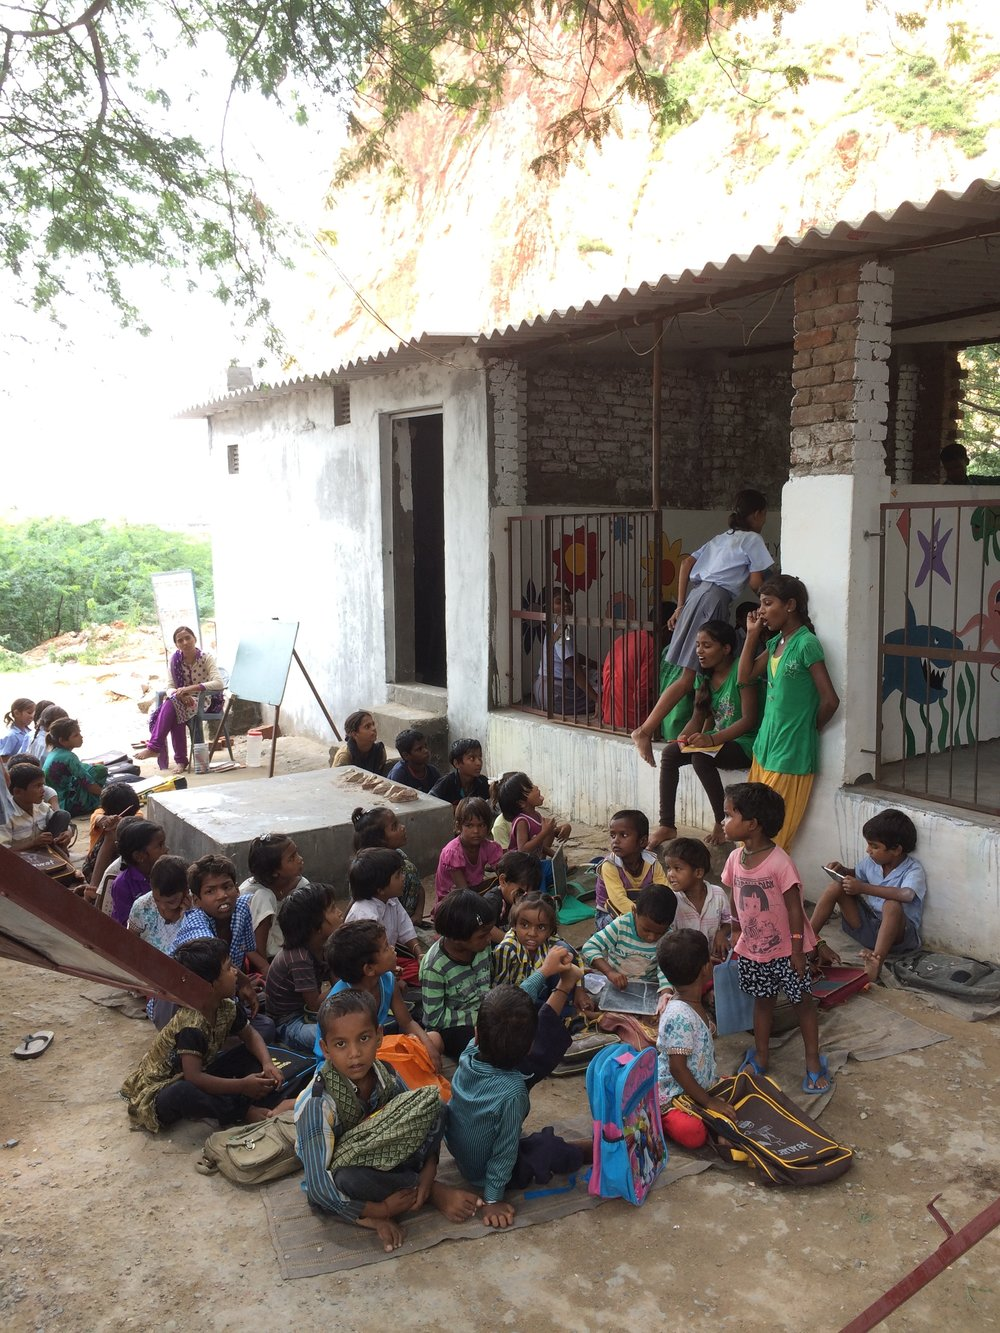 Outdoor school classroom in Jaipur, India